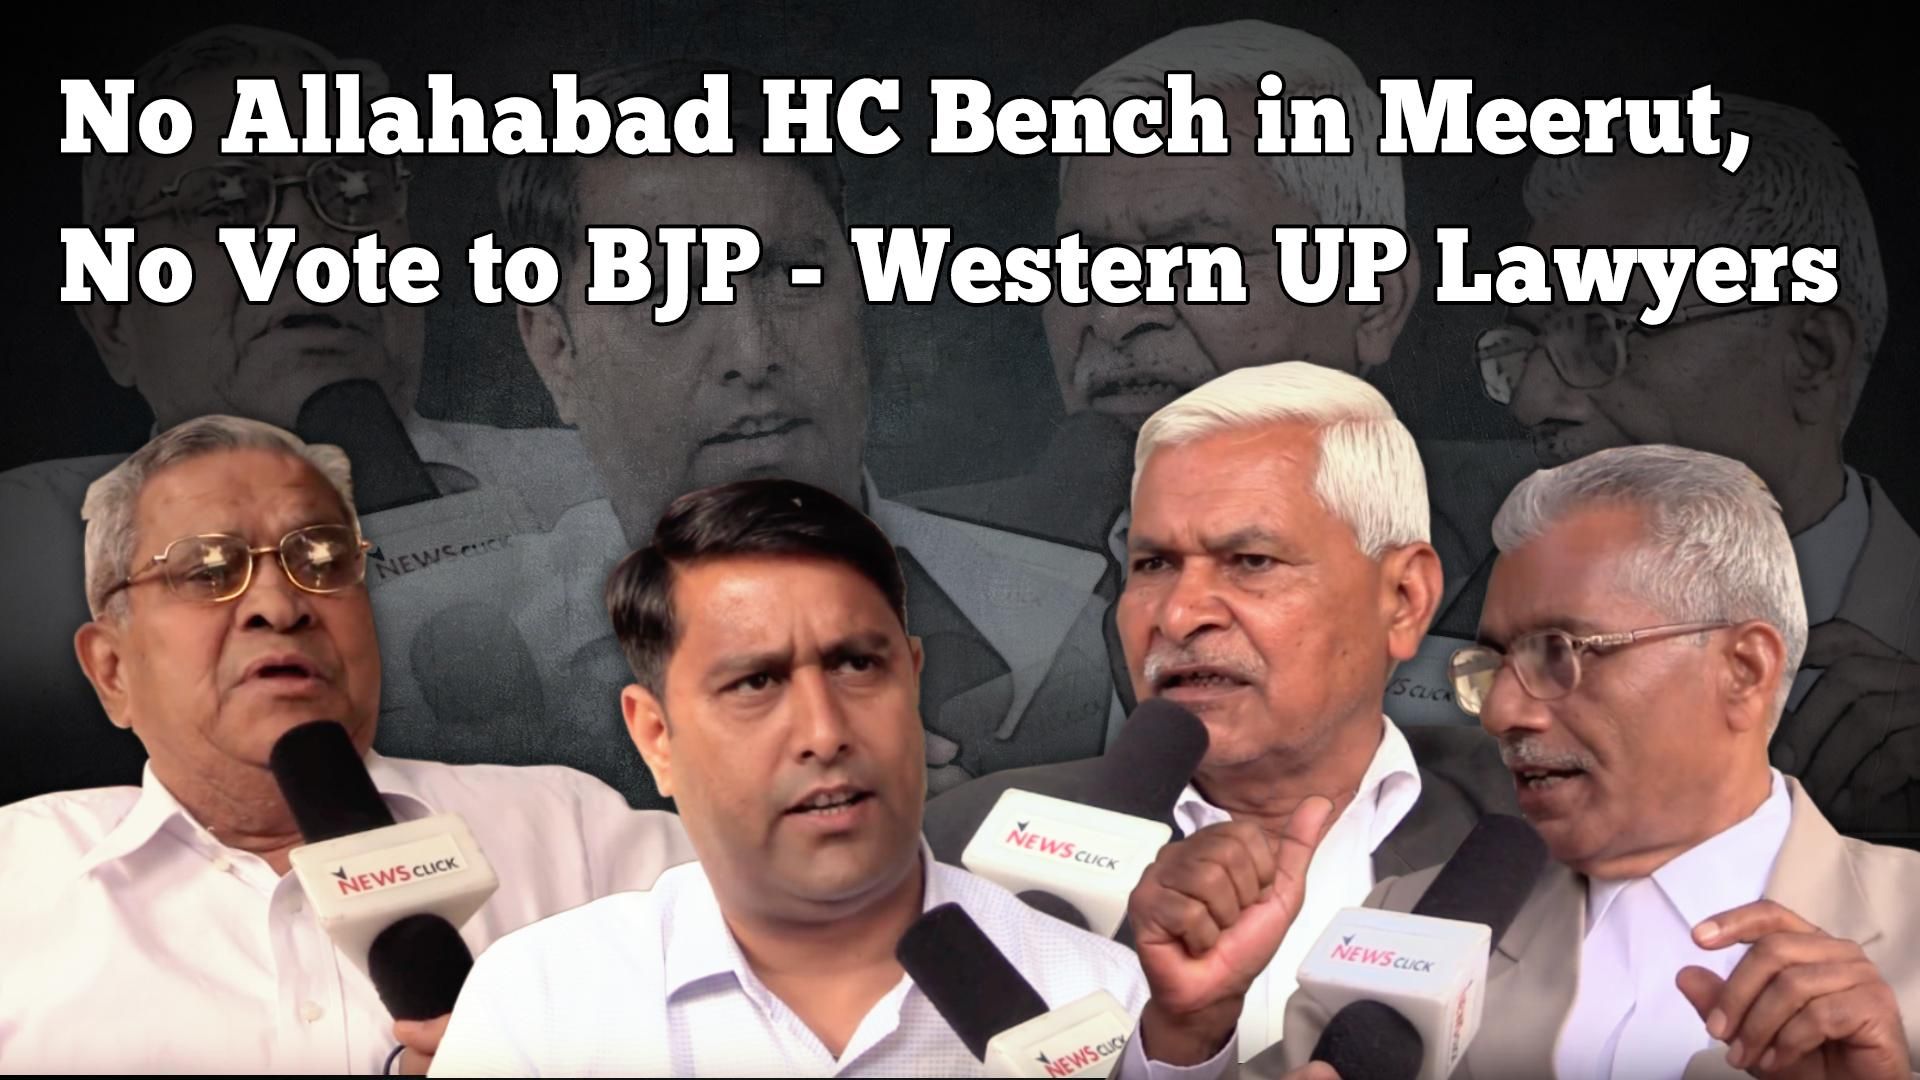 Elections 2019 no allahabad hc bench in meerut no vote to bjp newsclick